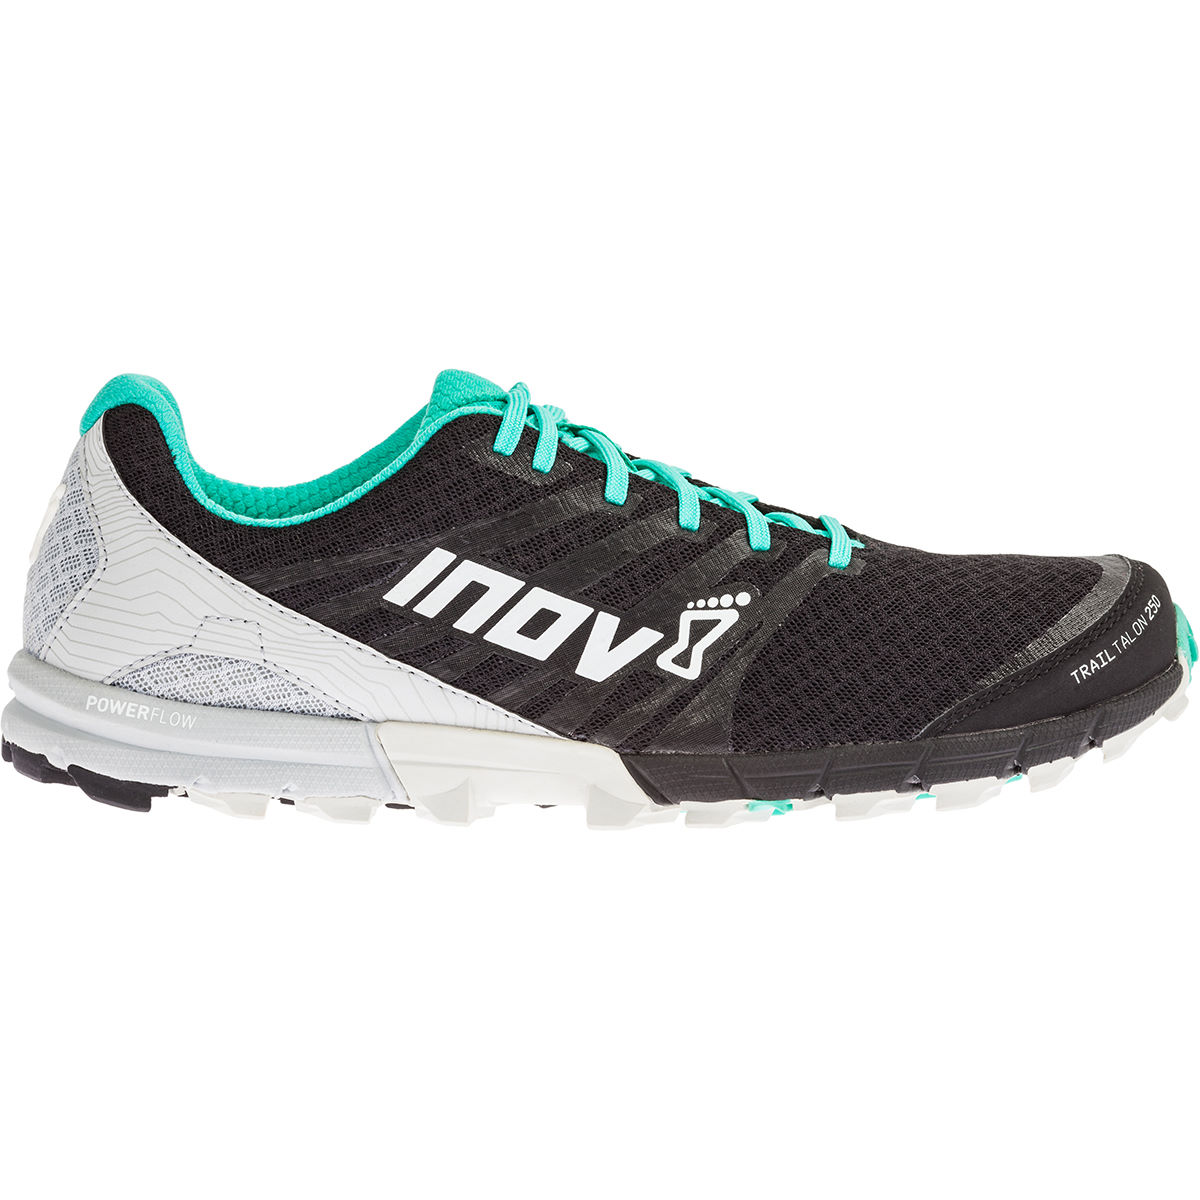 Inov8 Womens Trail Talon 250 Shoes (SS17)   Offroad Running Shoes